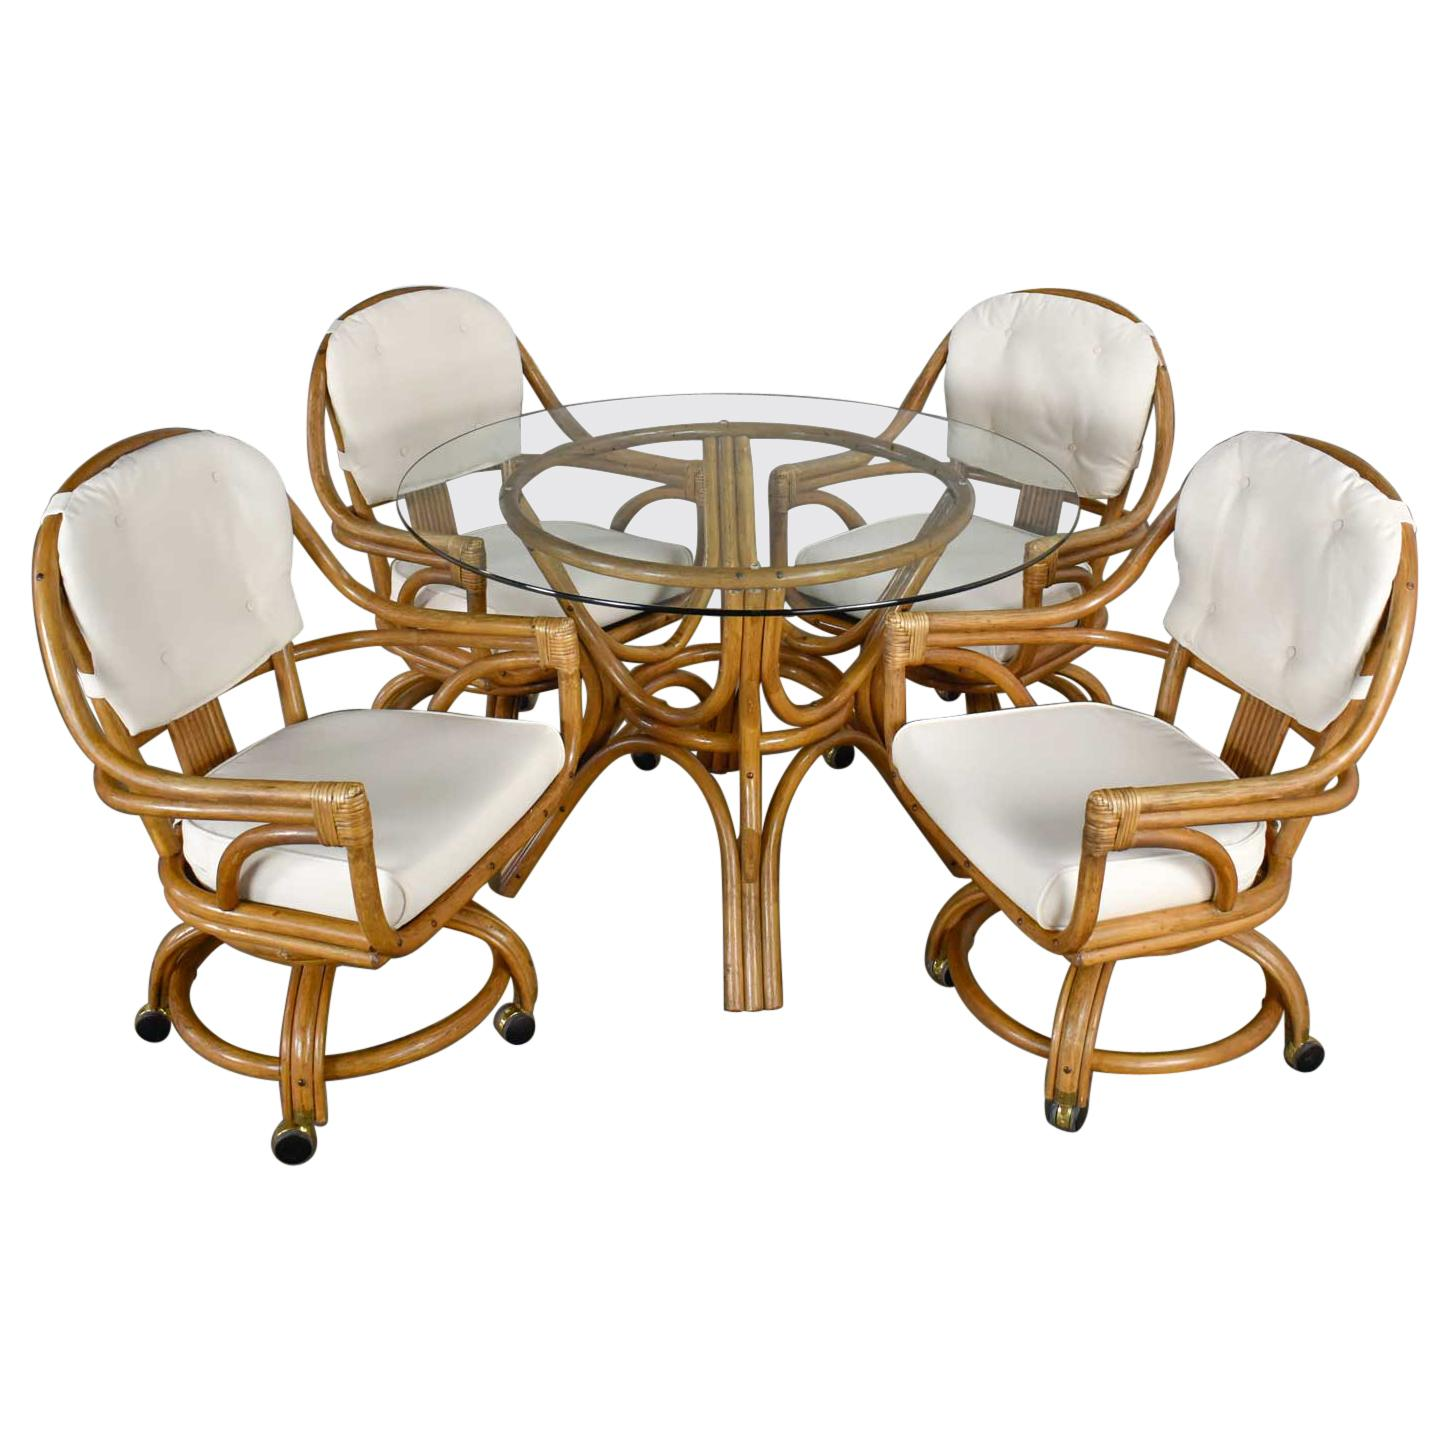 Pacific Rattan Game or Dining Table Round Glass Top & 4 Rolling Swivel Chairs